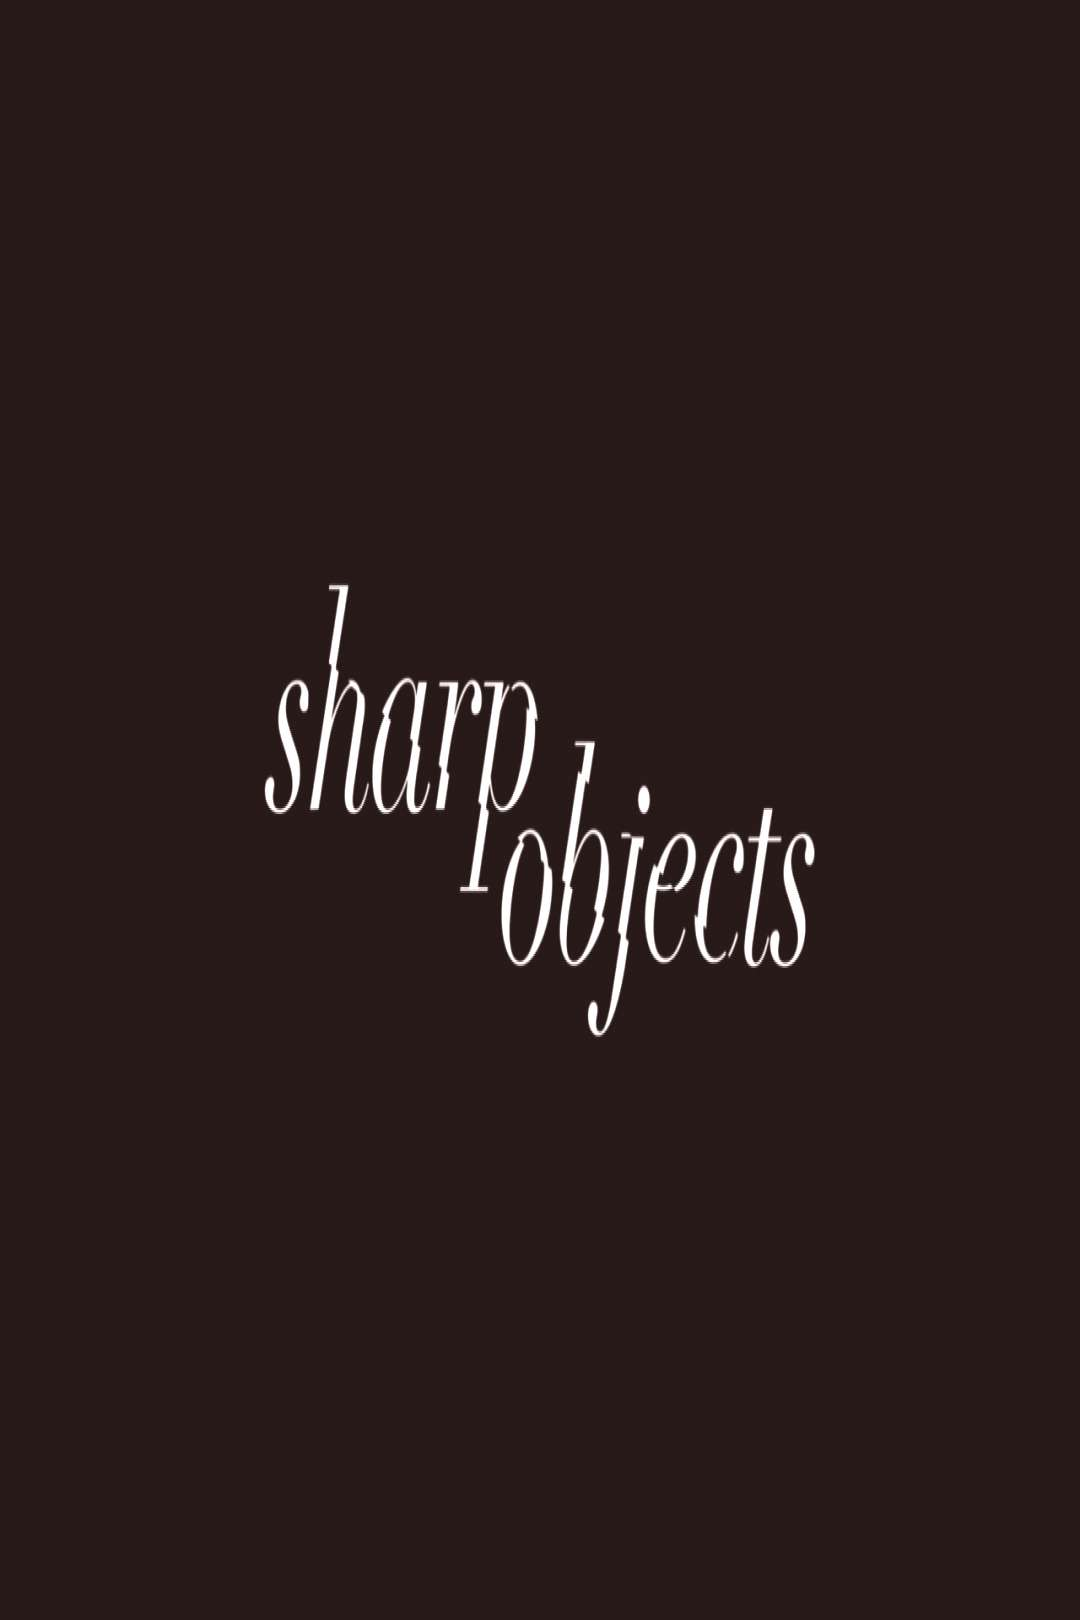 Sharp Objects Cinematography + Cinematography Objects sharp objects cinematography \ cinematography